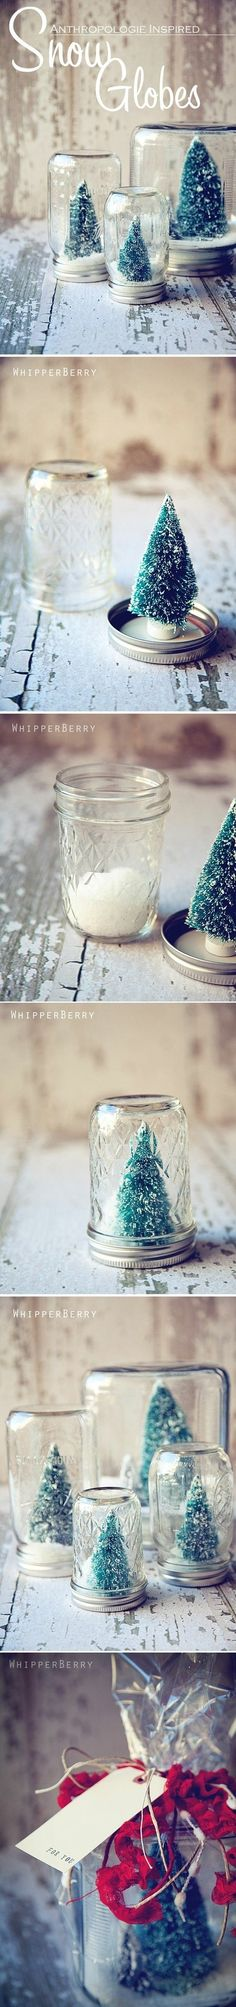 Make snow globes out